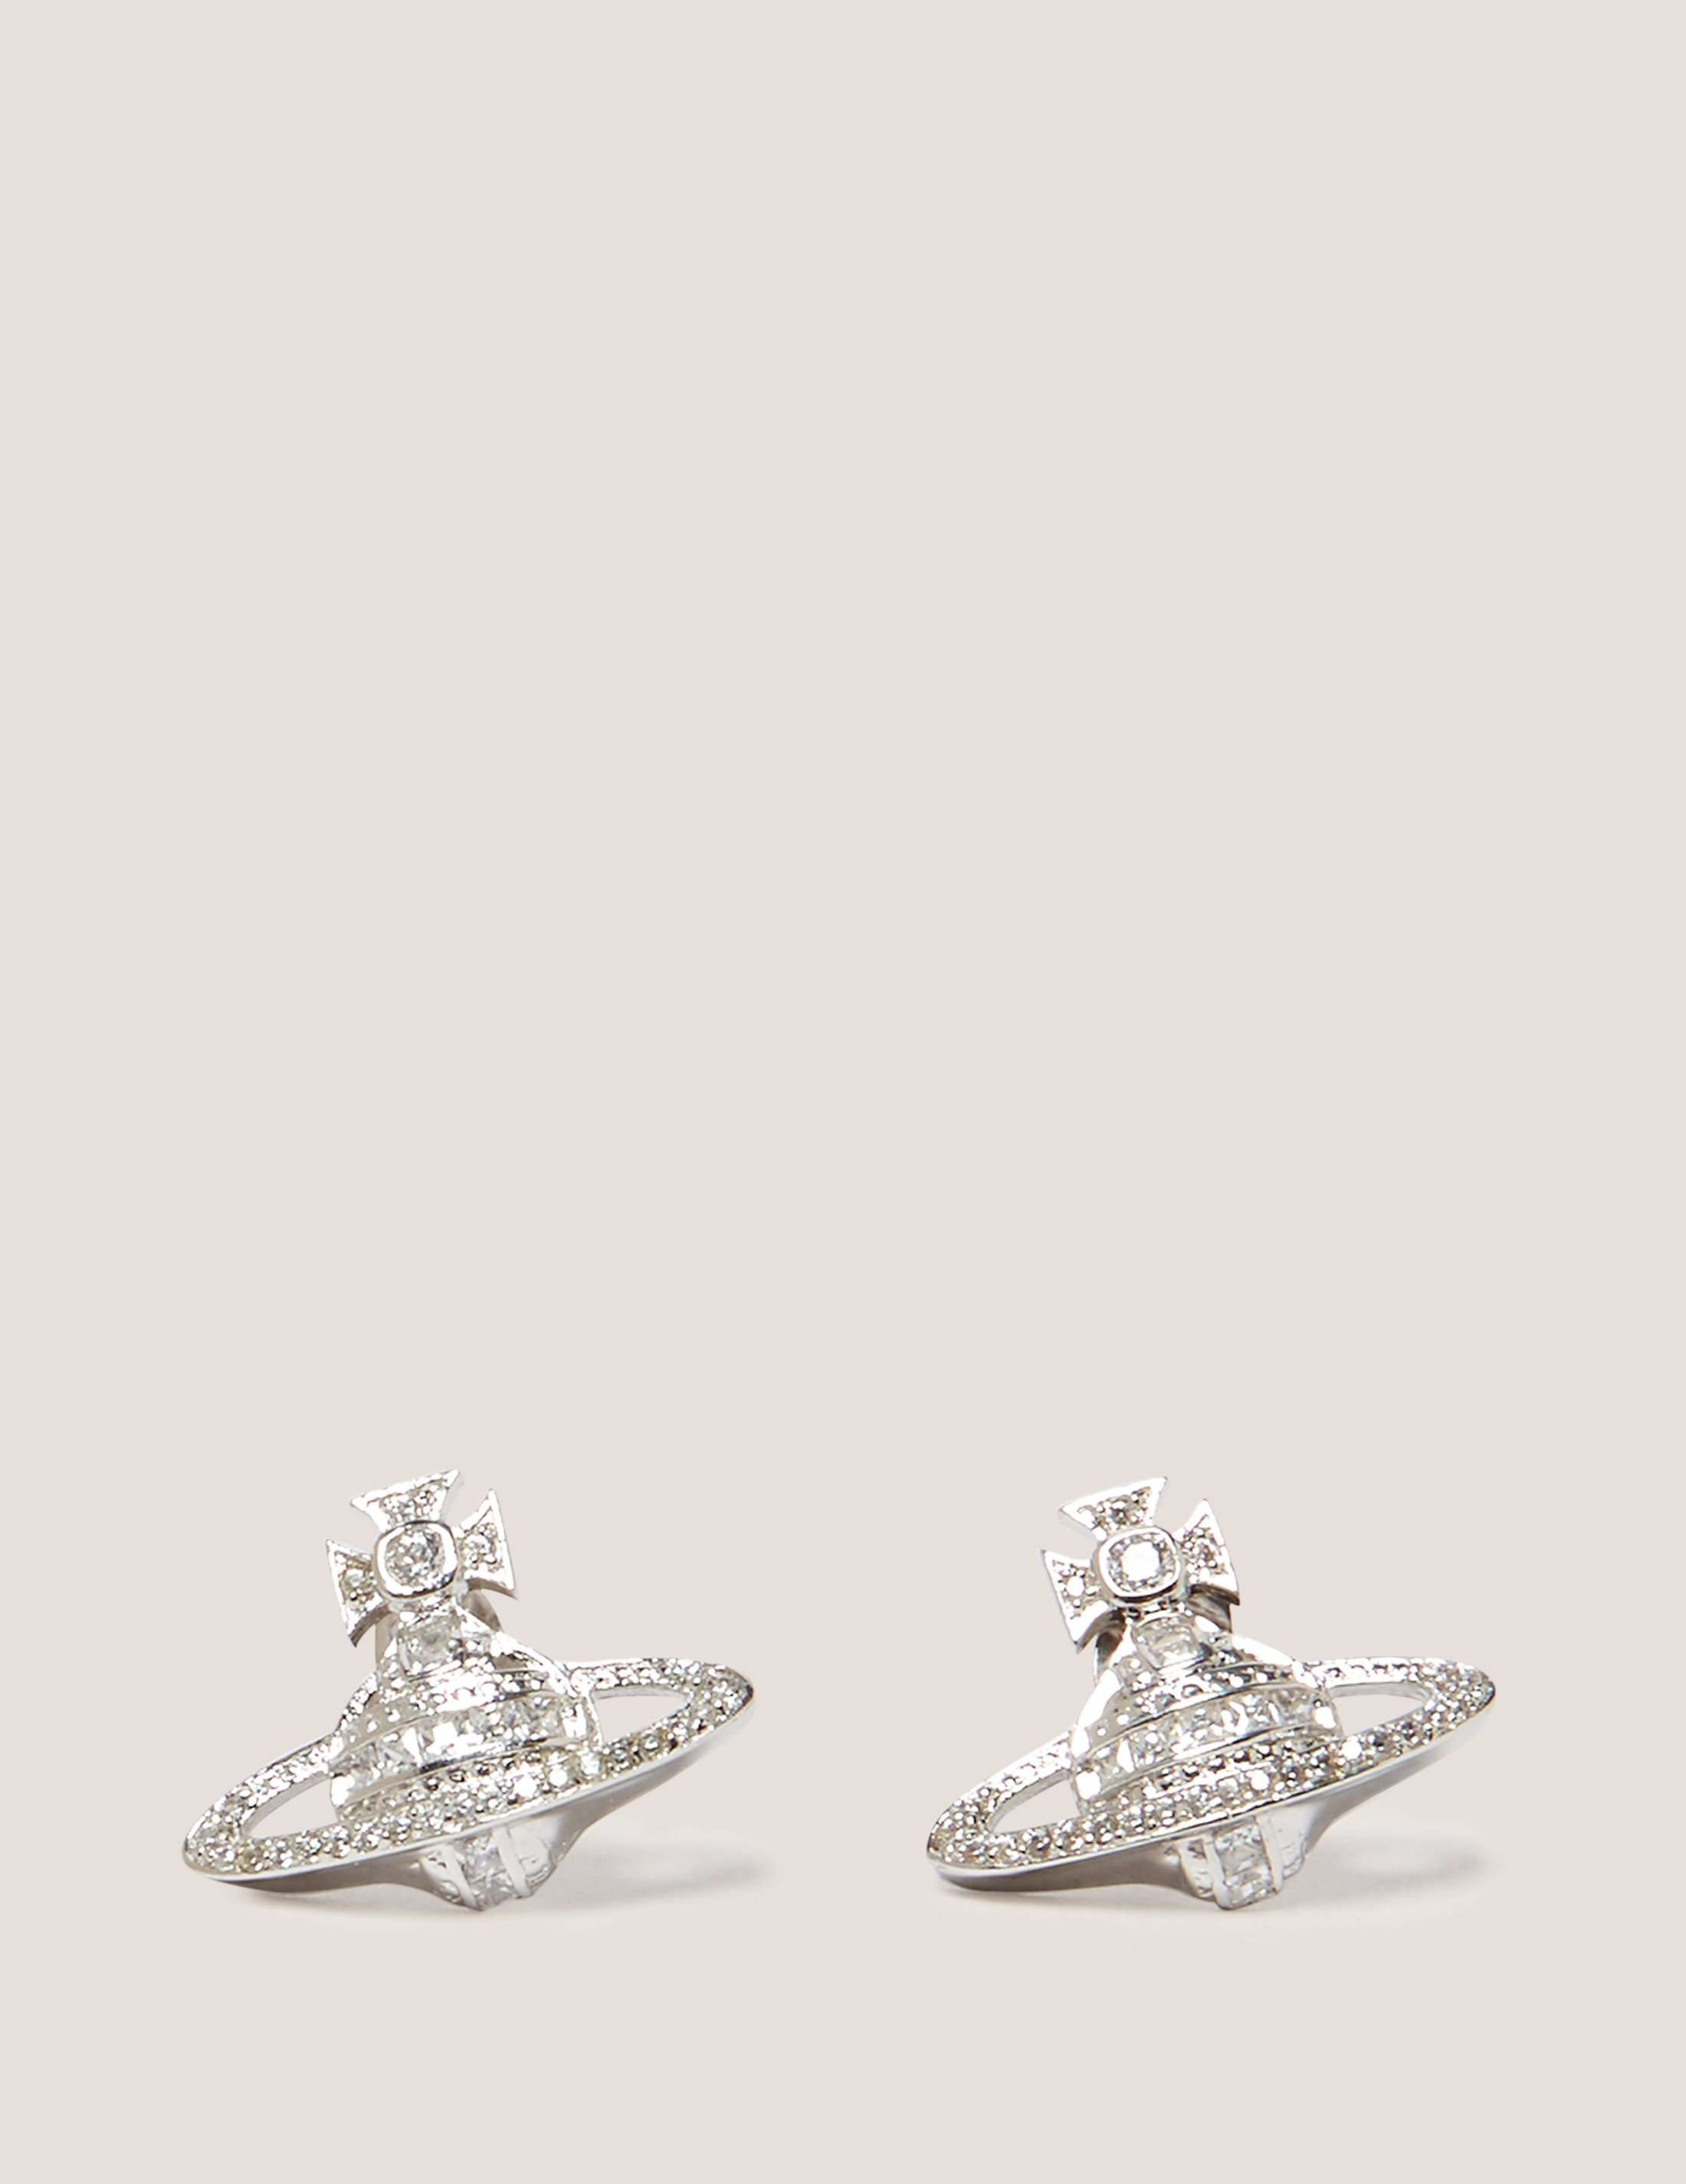 Vivienne Westwood Andrea Stud Earrings